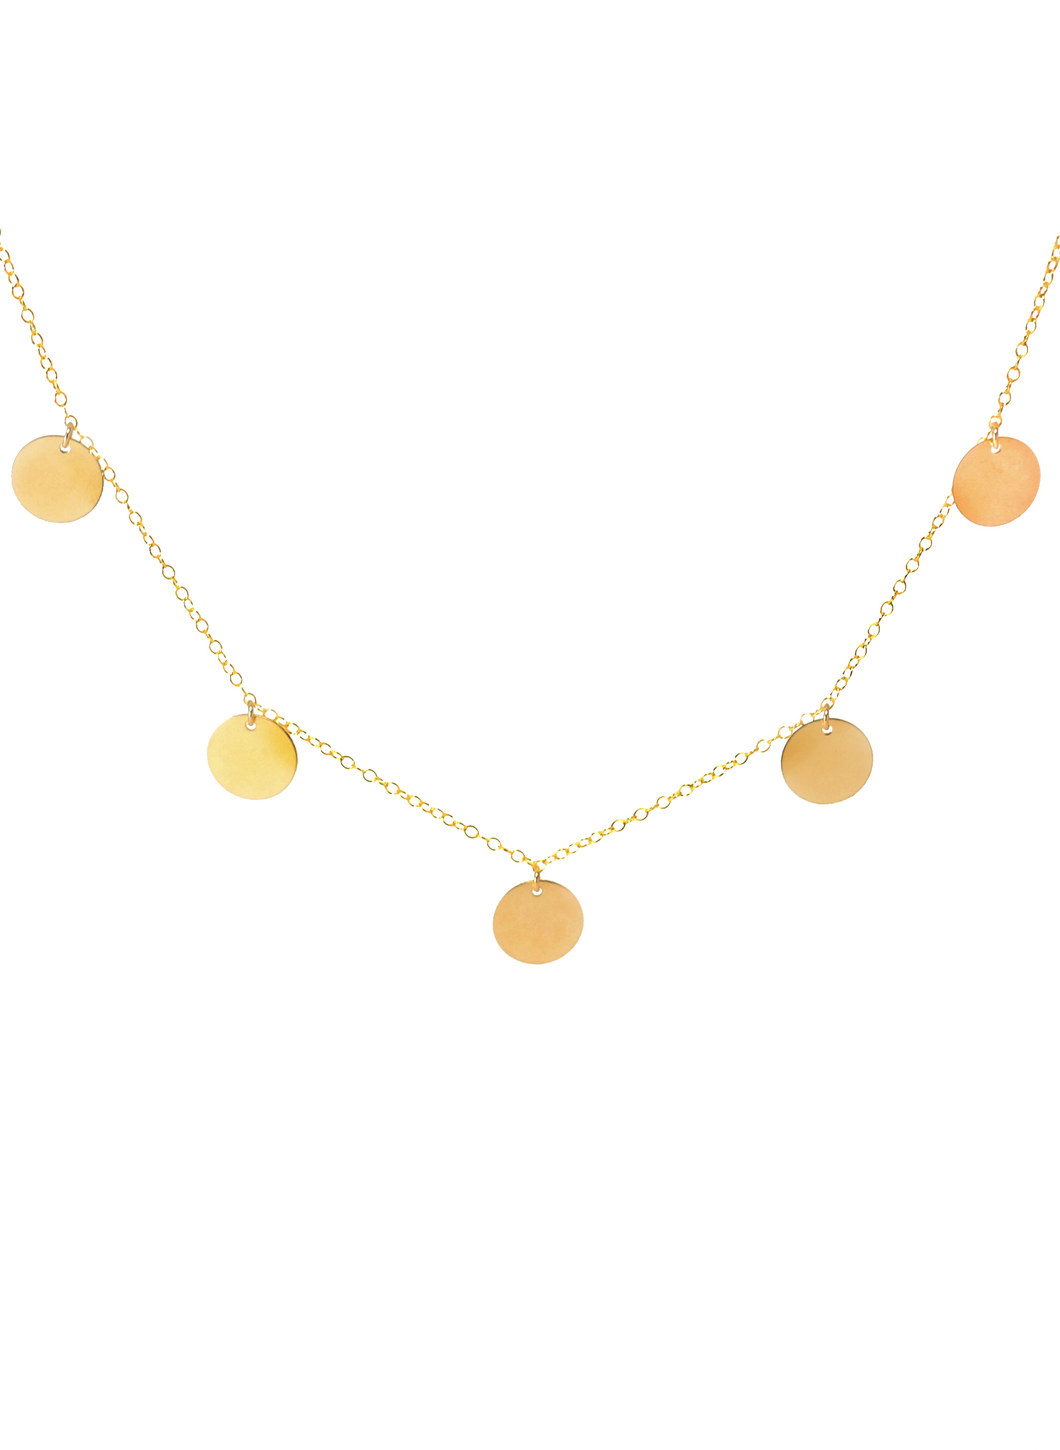 BOHO NECKLACE IN GOLD